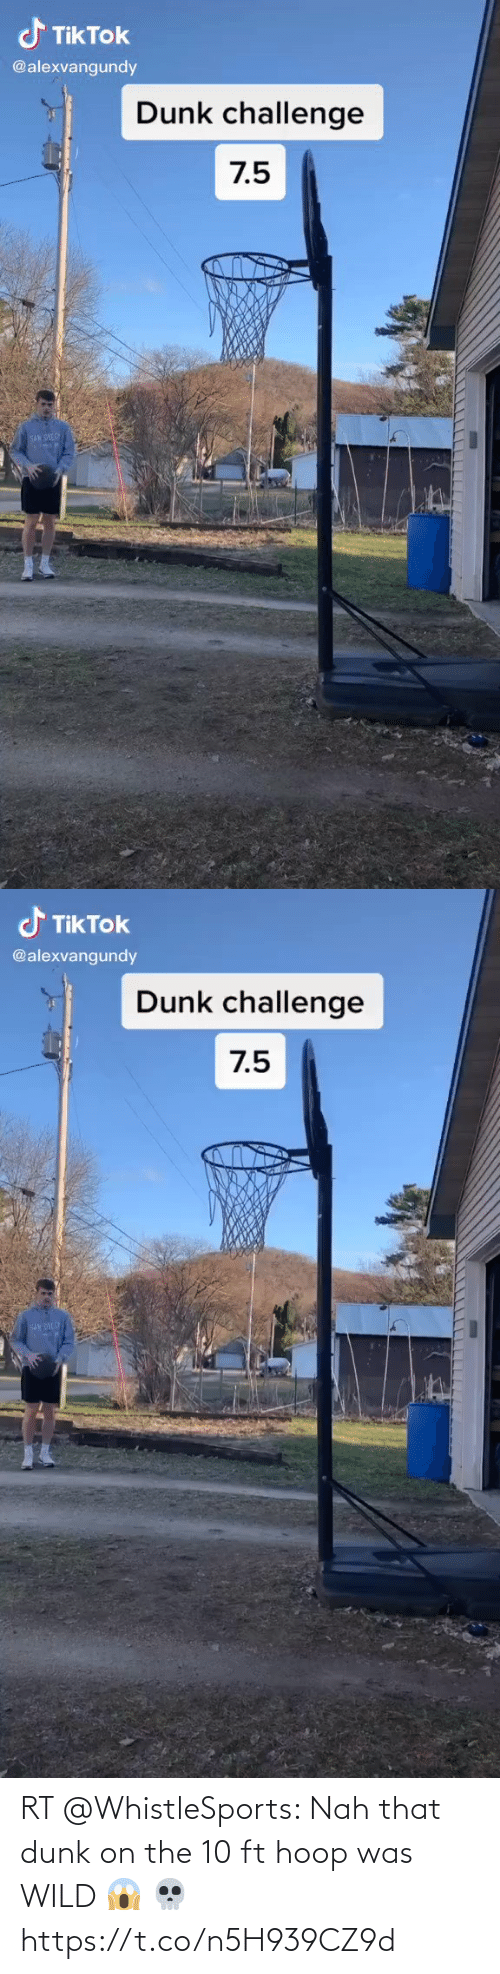 ballmemes.com: RT @WhistleSports: Nah that dunk on the 10 ft hoop was WILD 😱 💀 https://t.co/n5H939CZ9d